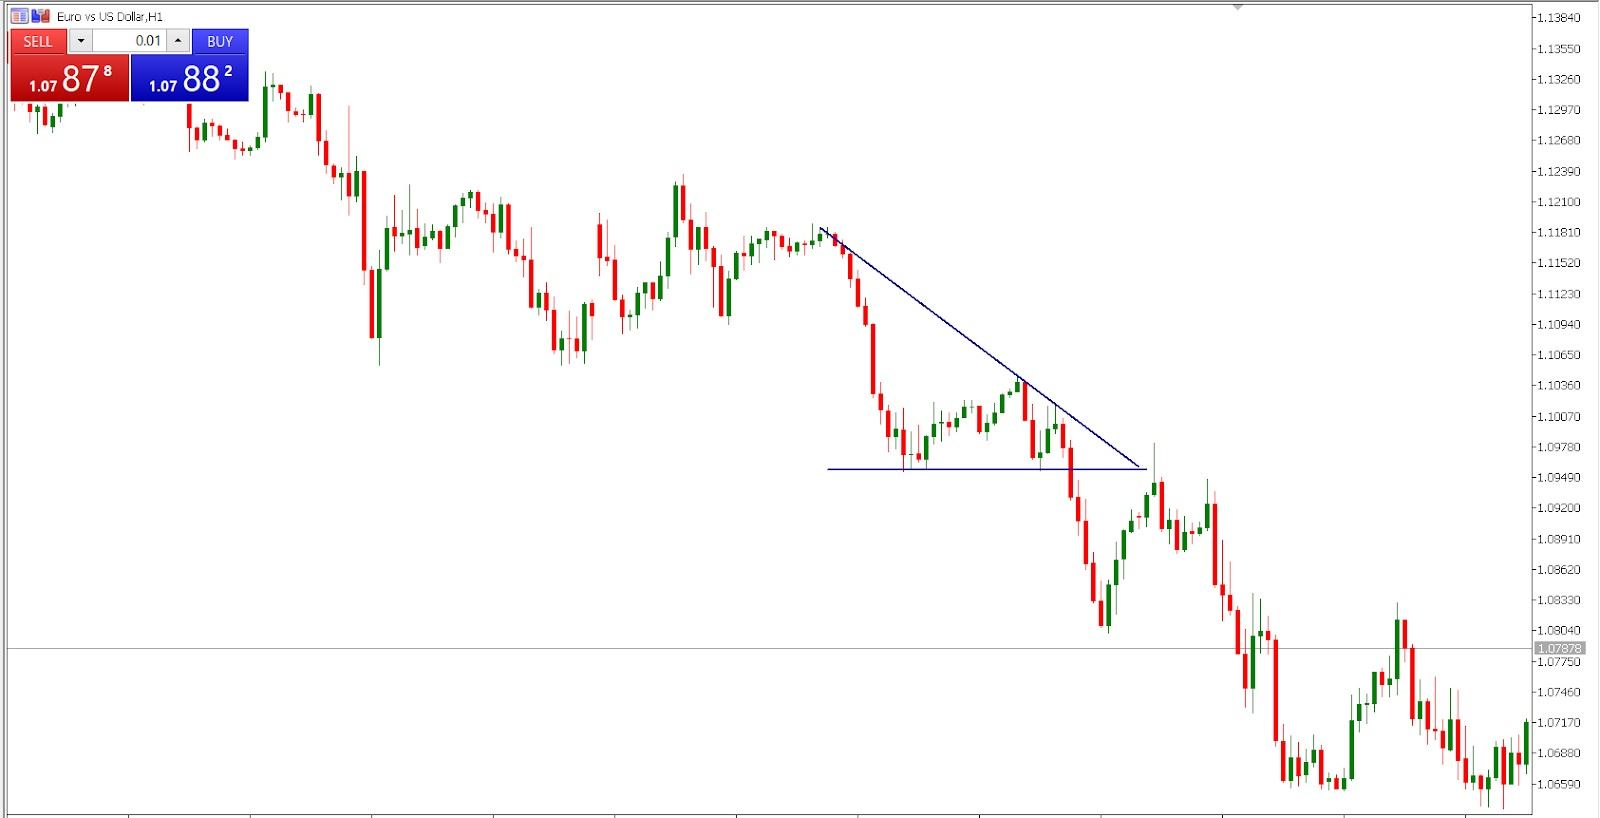 the descending triangle on EUR/USD hourly chart